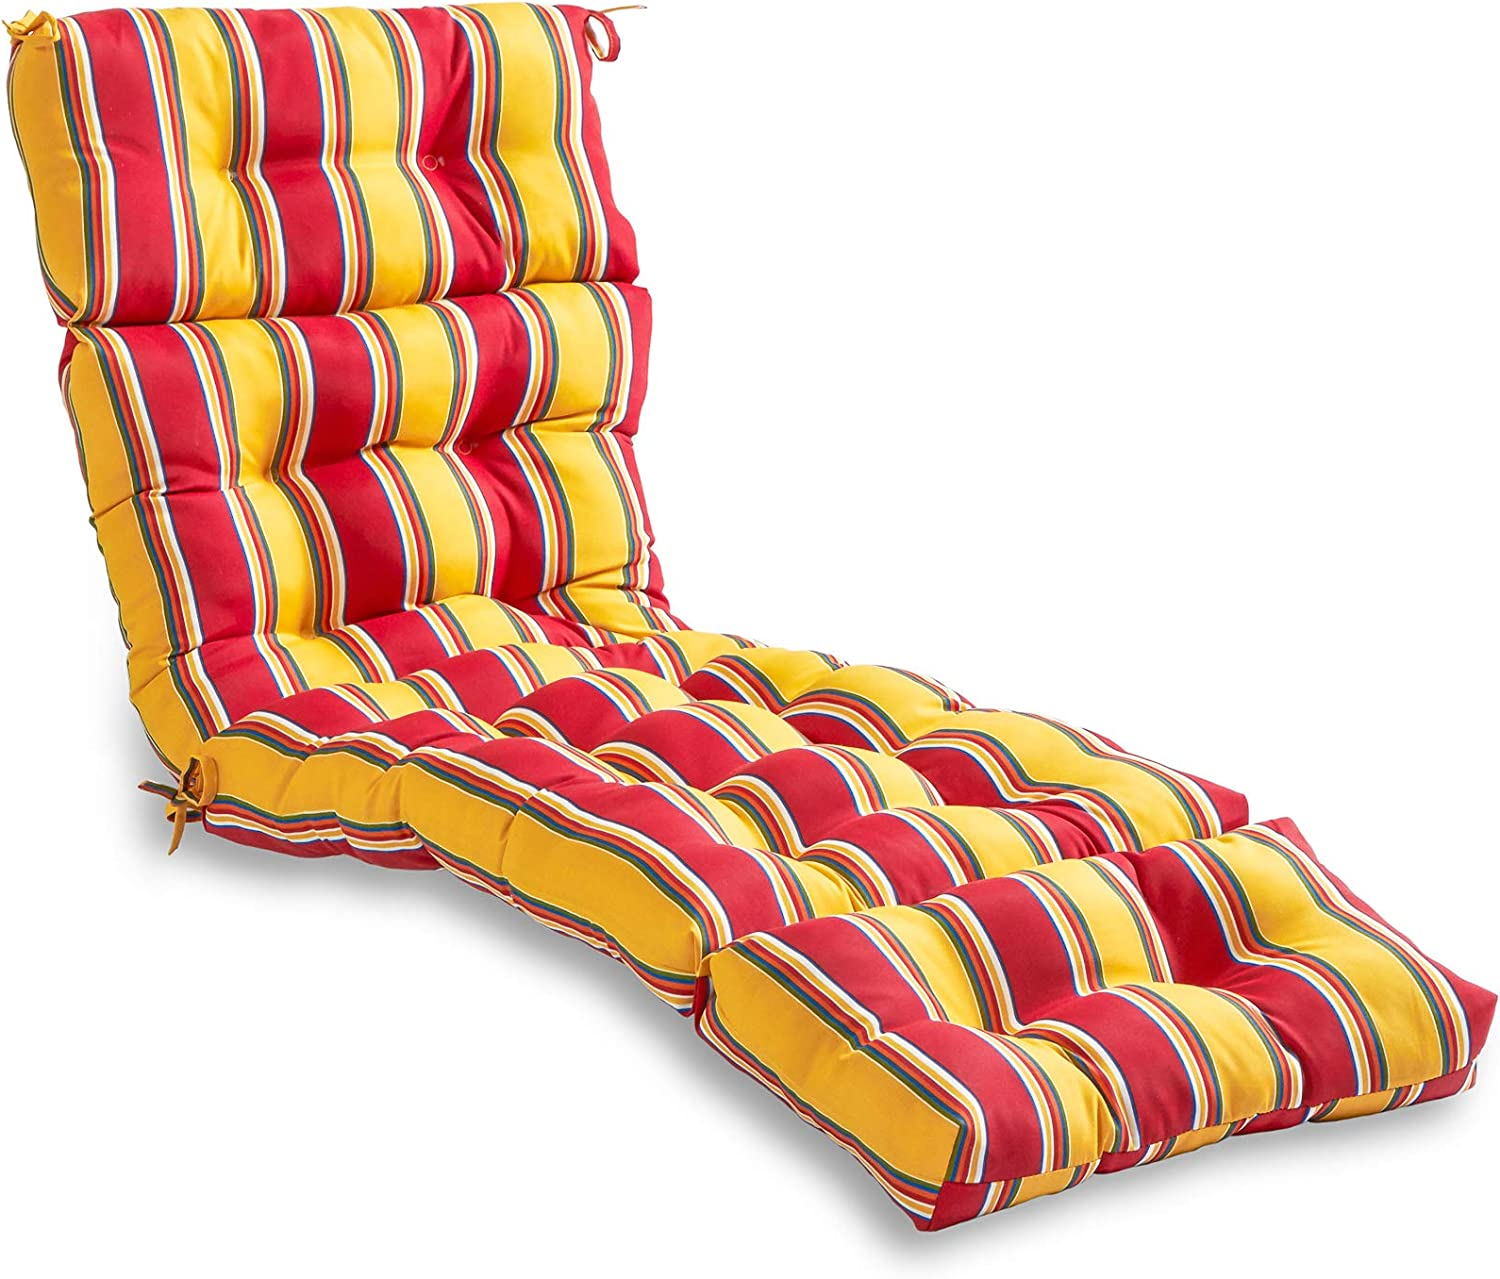 South Pine Porch AM4804-CARNIVAL Carnival Stripe 72-inch Outdoor Chaise Lounge Cushion